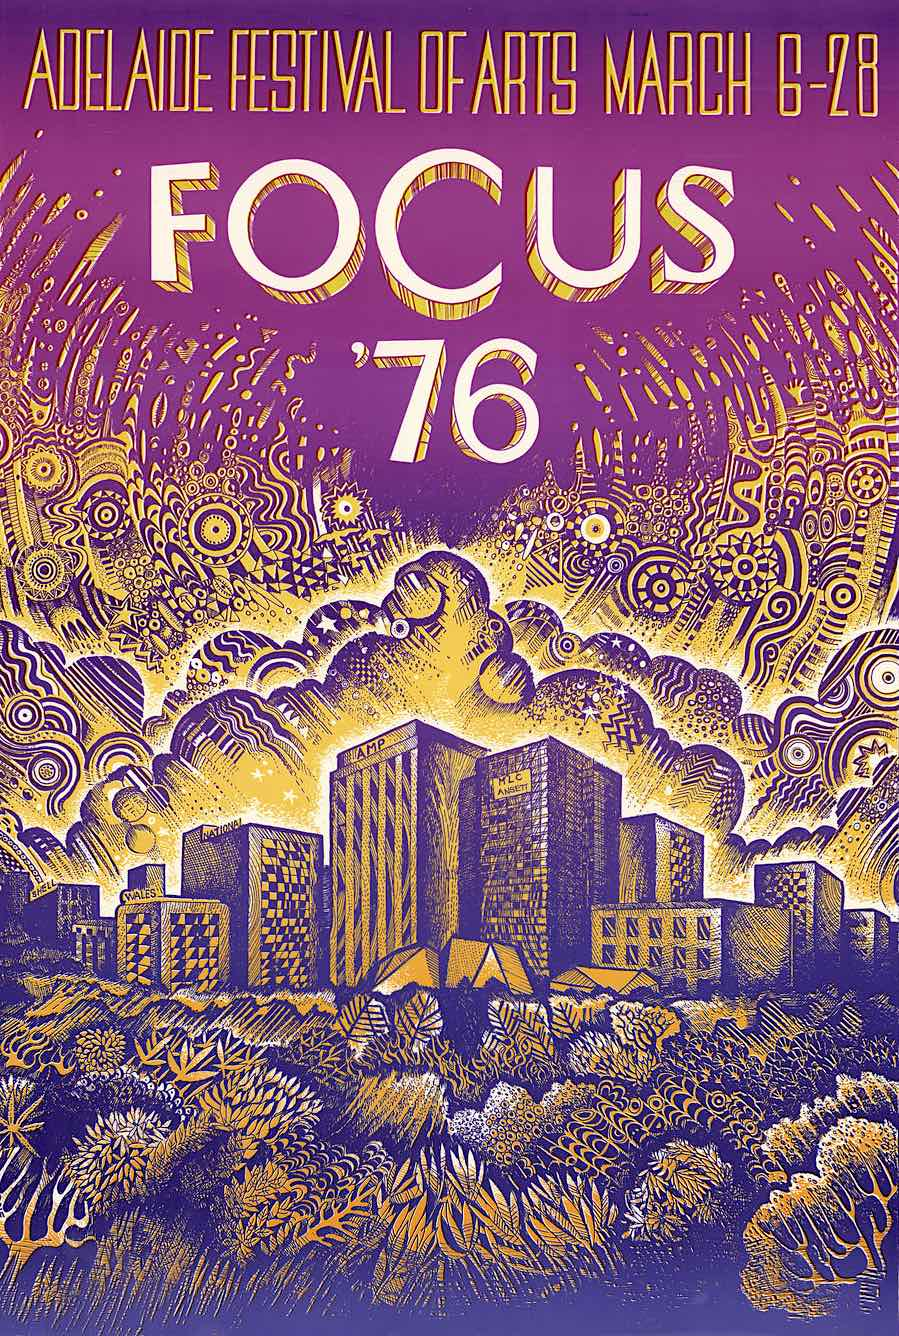 a 1976 purple and amber poster by Jim Cane, Adelaide Fesival Of Arts, Focus 1976